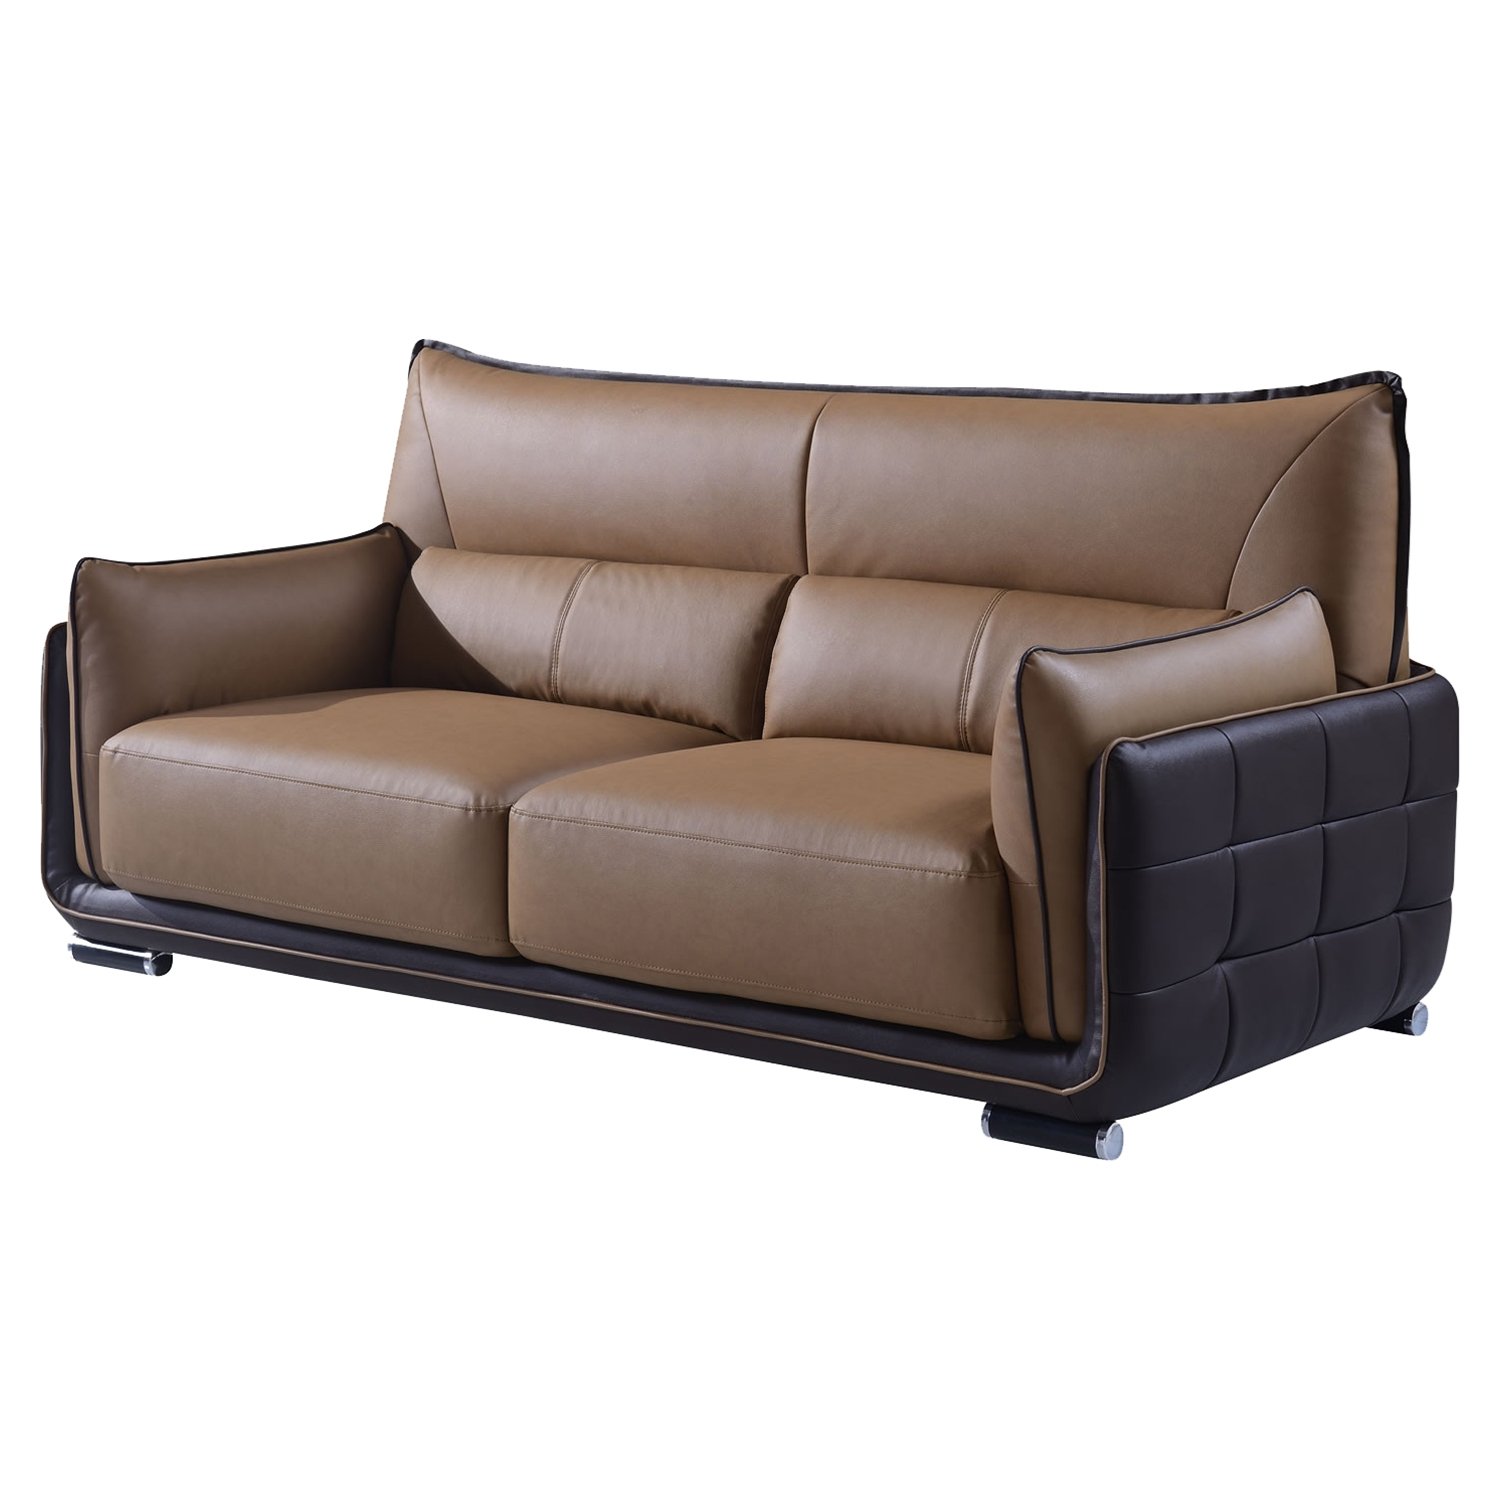 Kaden Sofa in Brown Leather - GLO-UFY220-RV-S